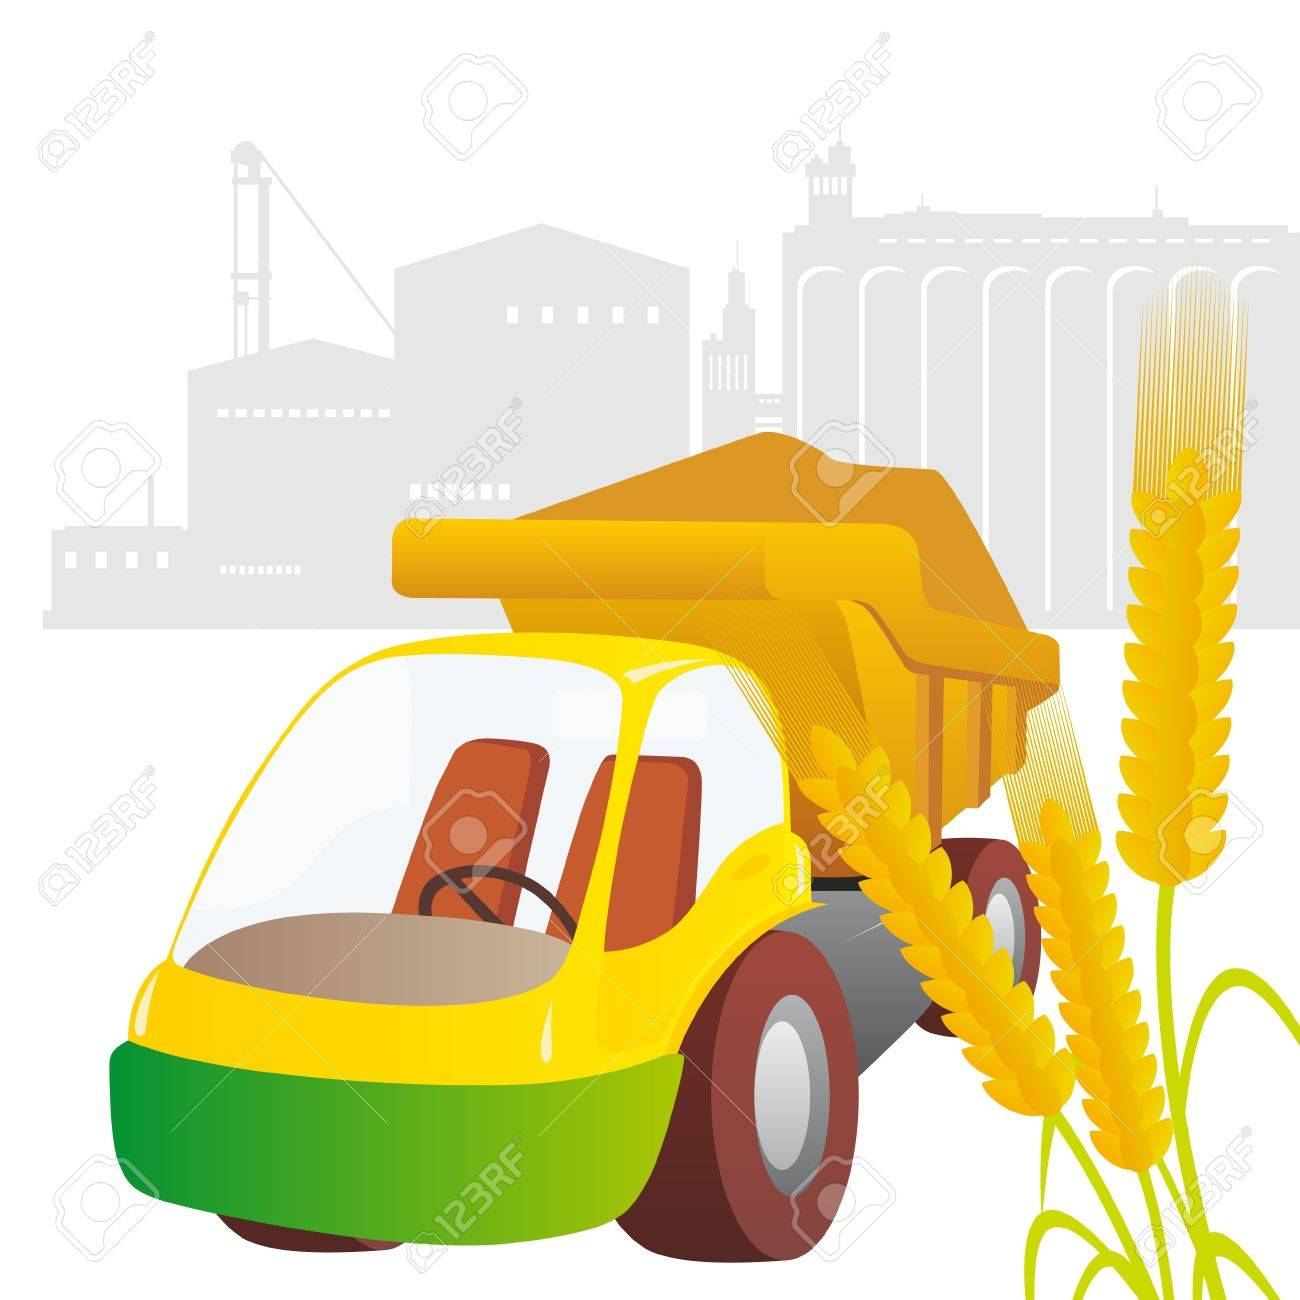 Ear of wheat and truck against the elevator  Illustration on white background Stock Vector - 15539902